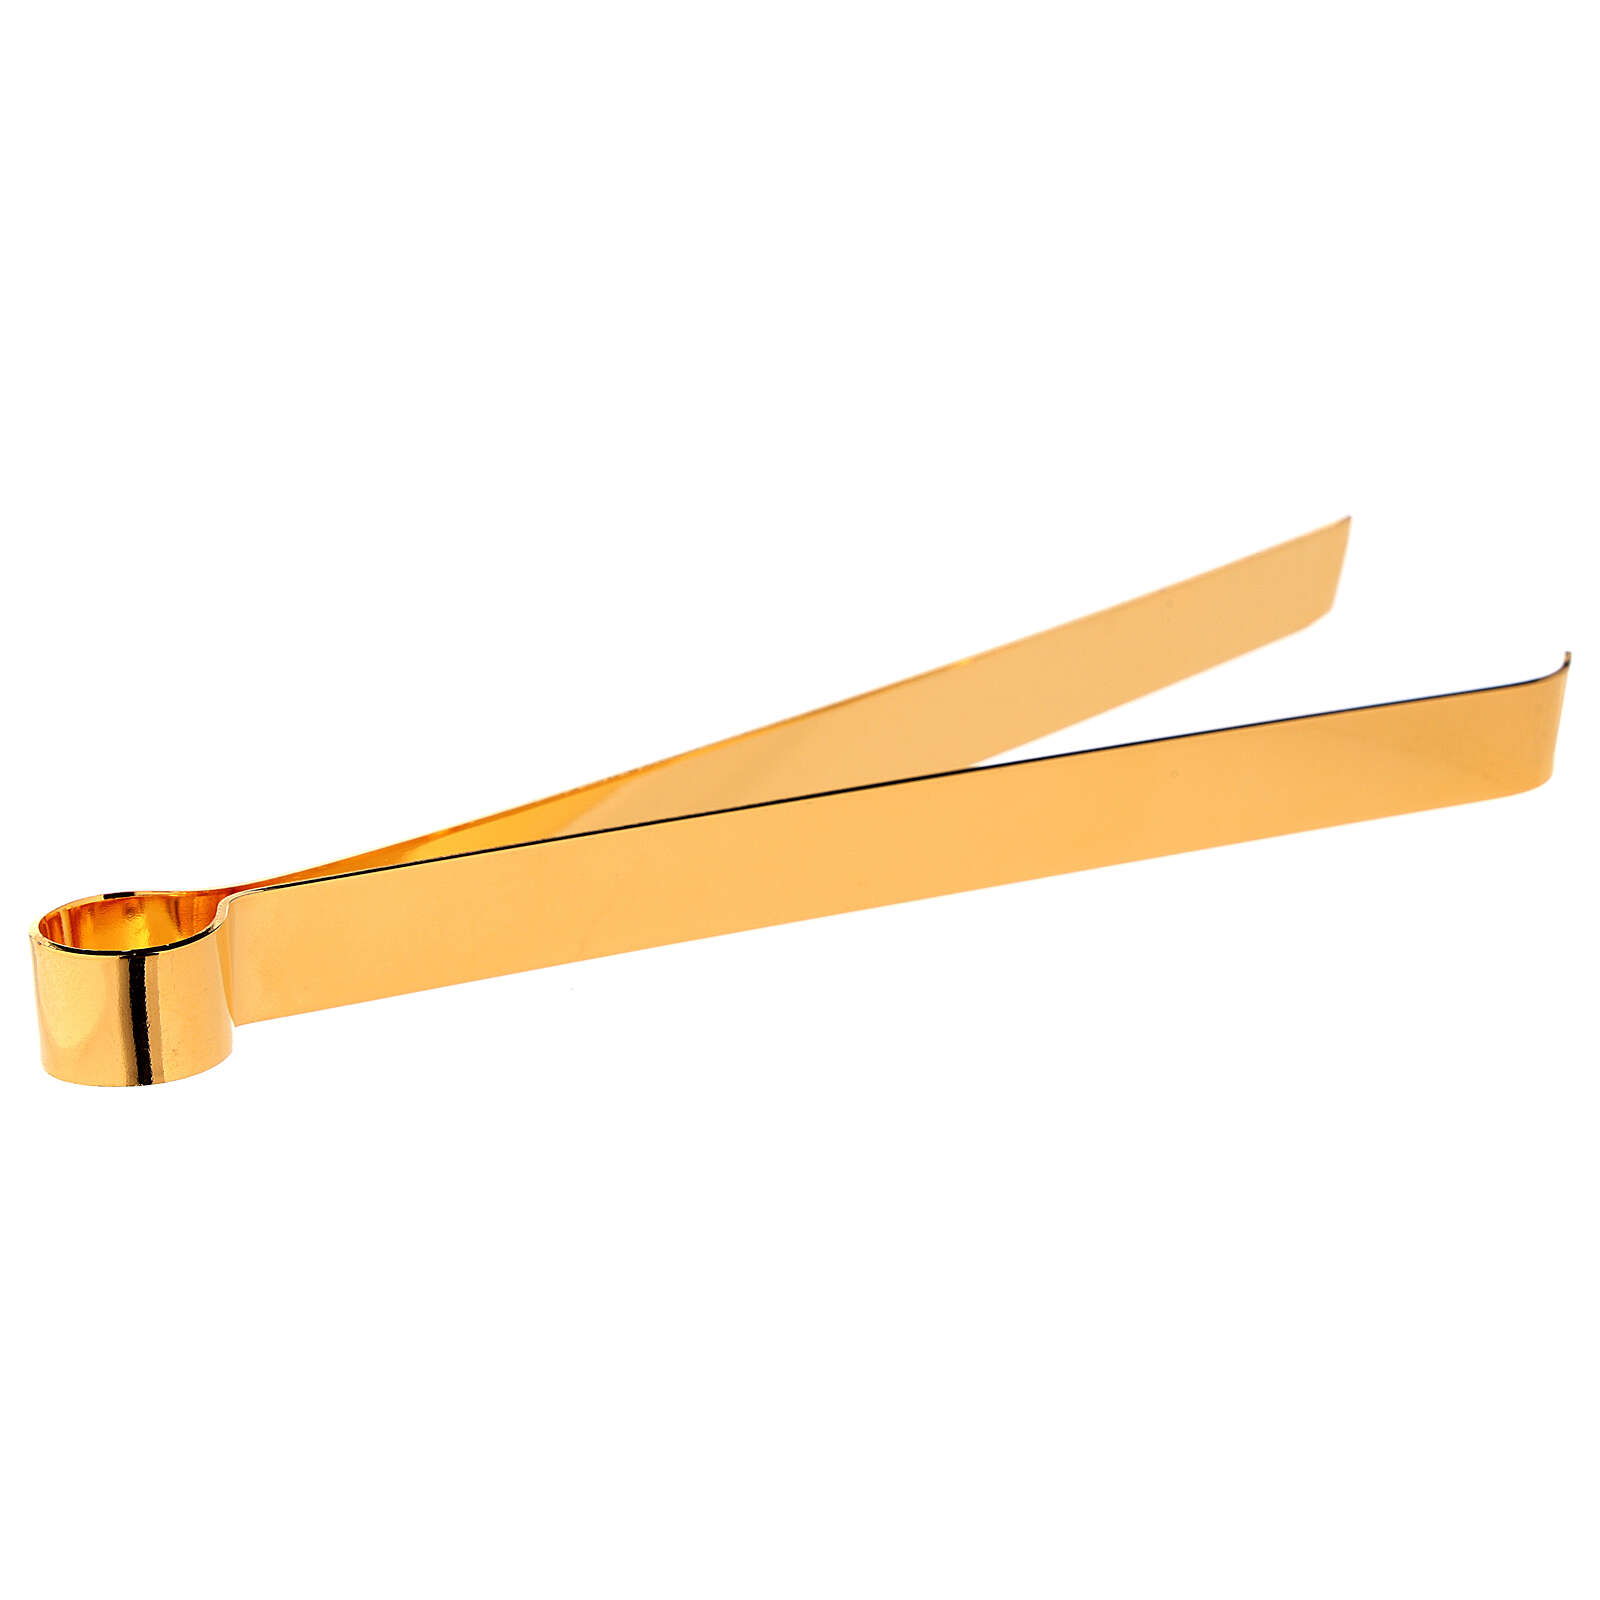 Gold plated Communion host tongs, 16 cm 3